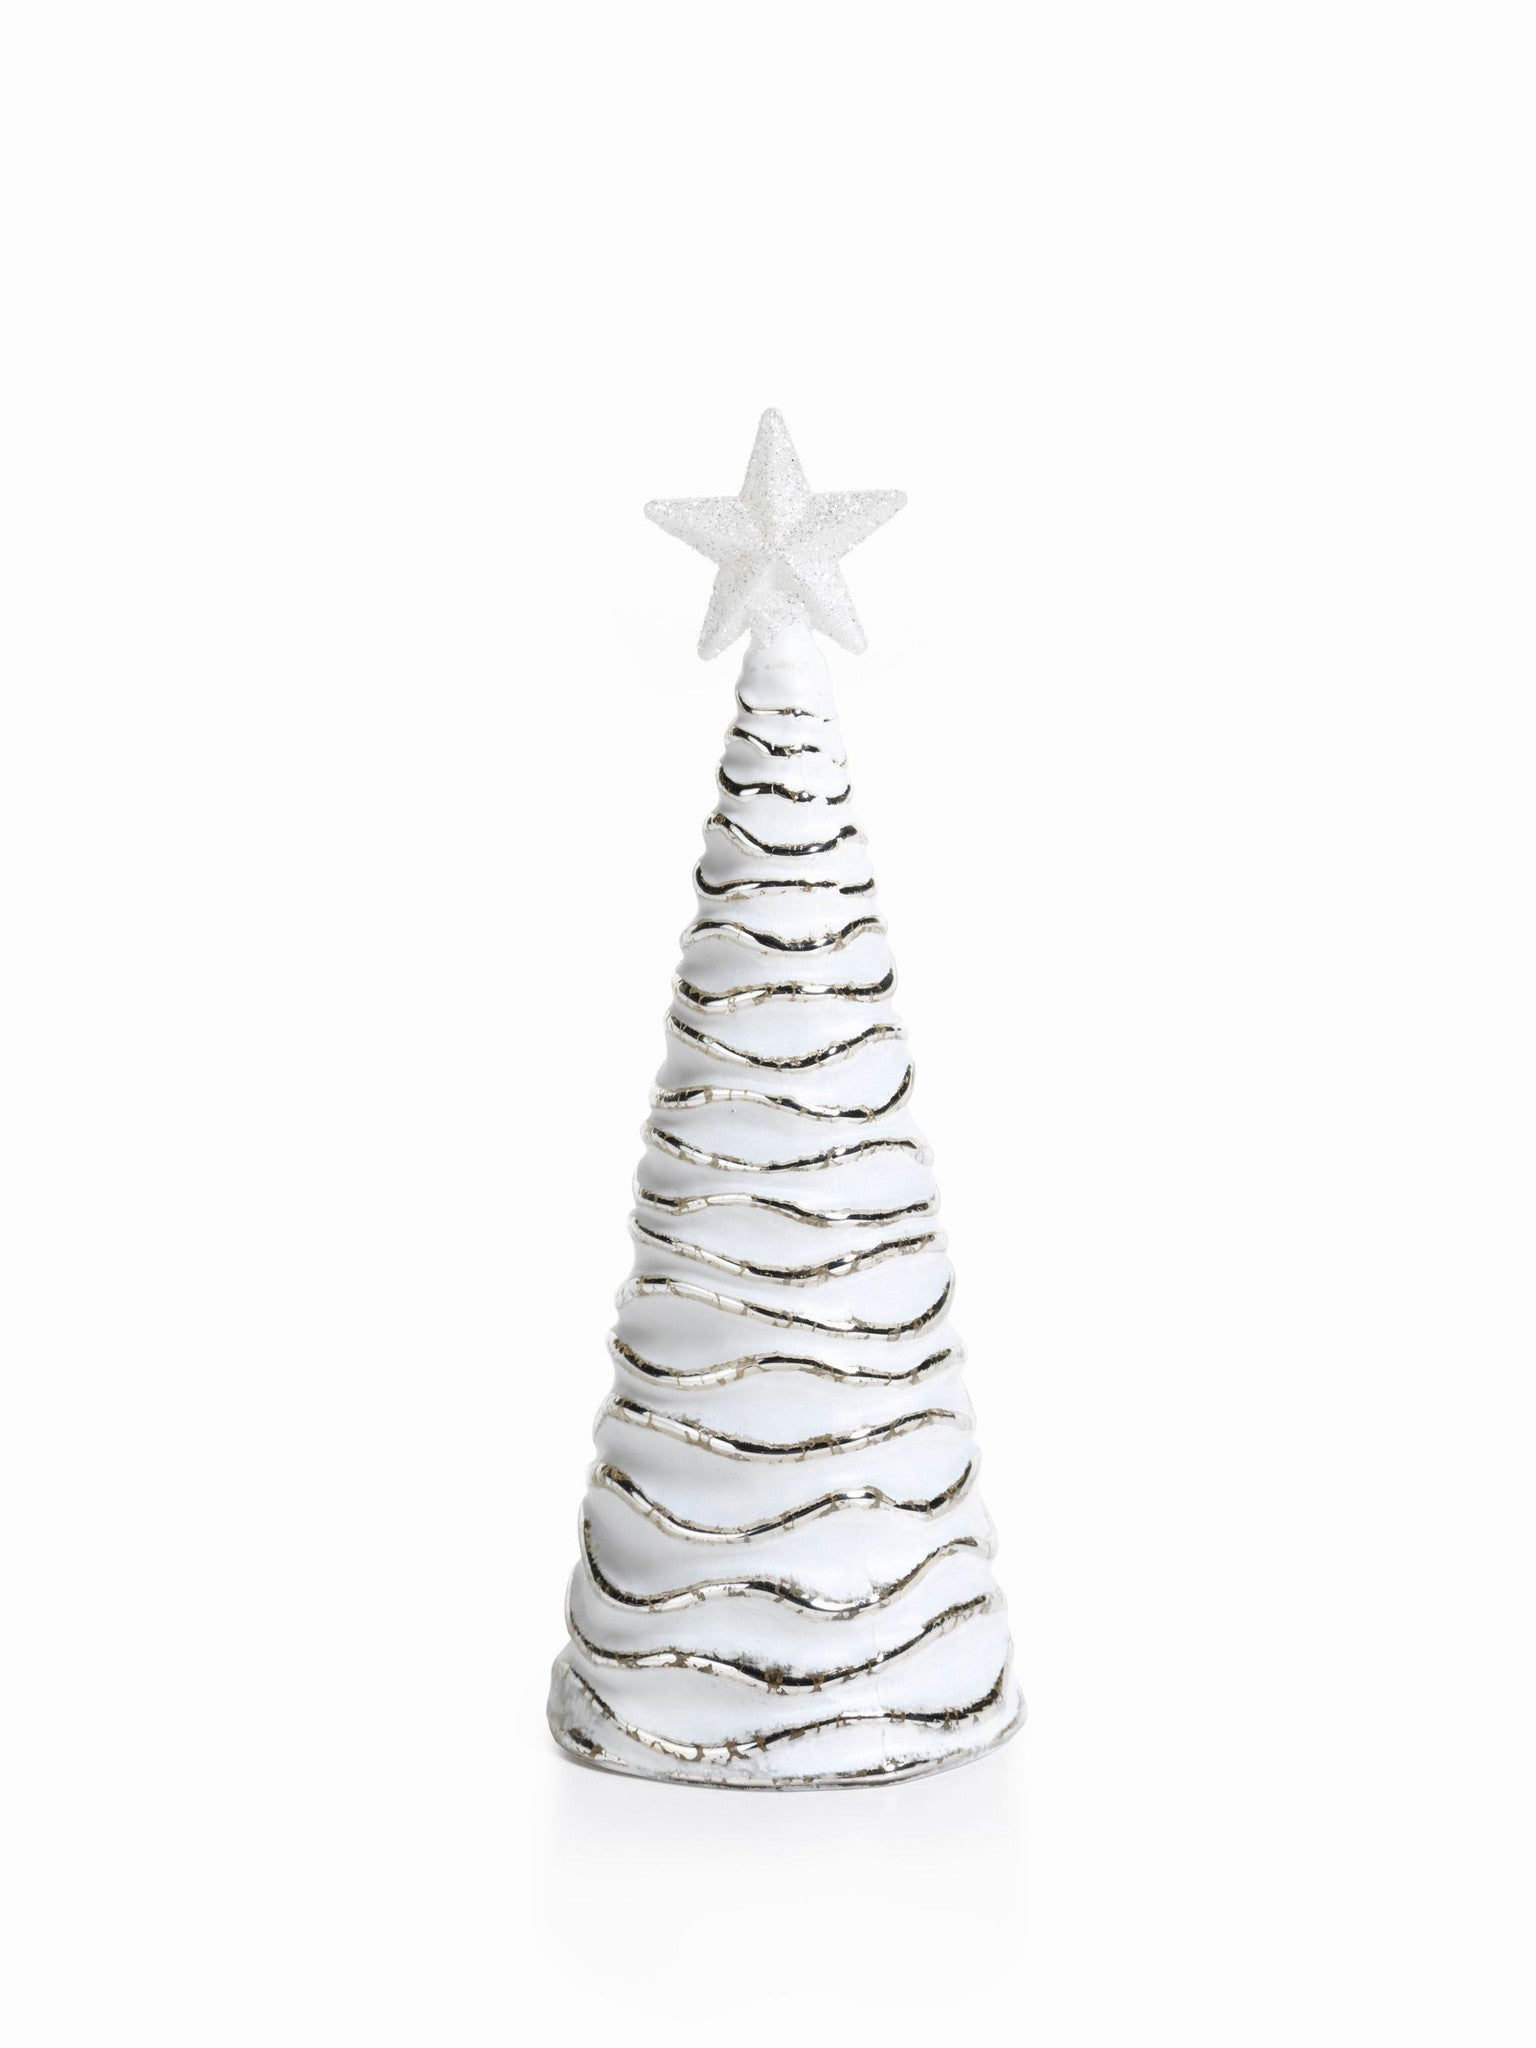 LED Glass Decorative Tree - Silver - Set of 6 - Large / Wavy - CARLYLE AVENUE - 5